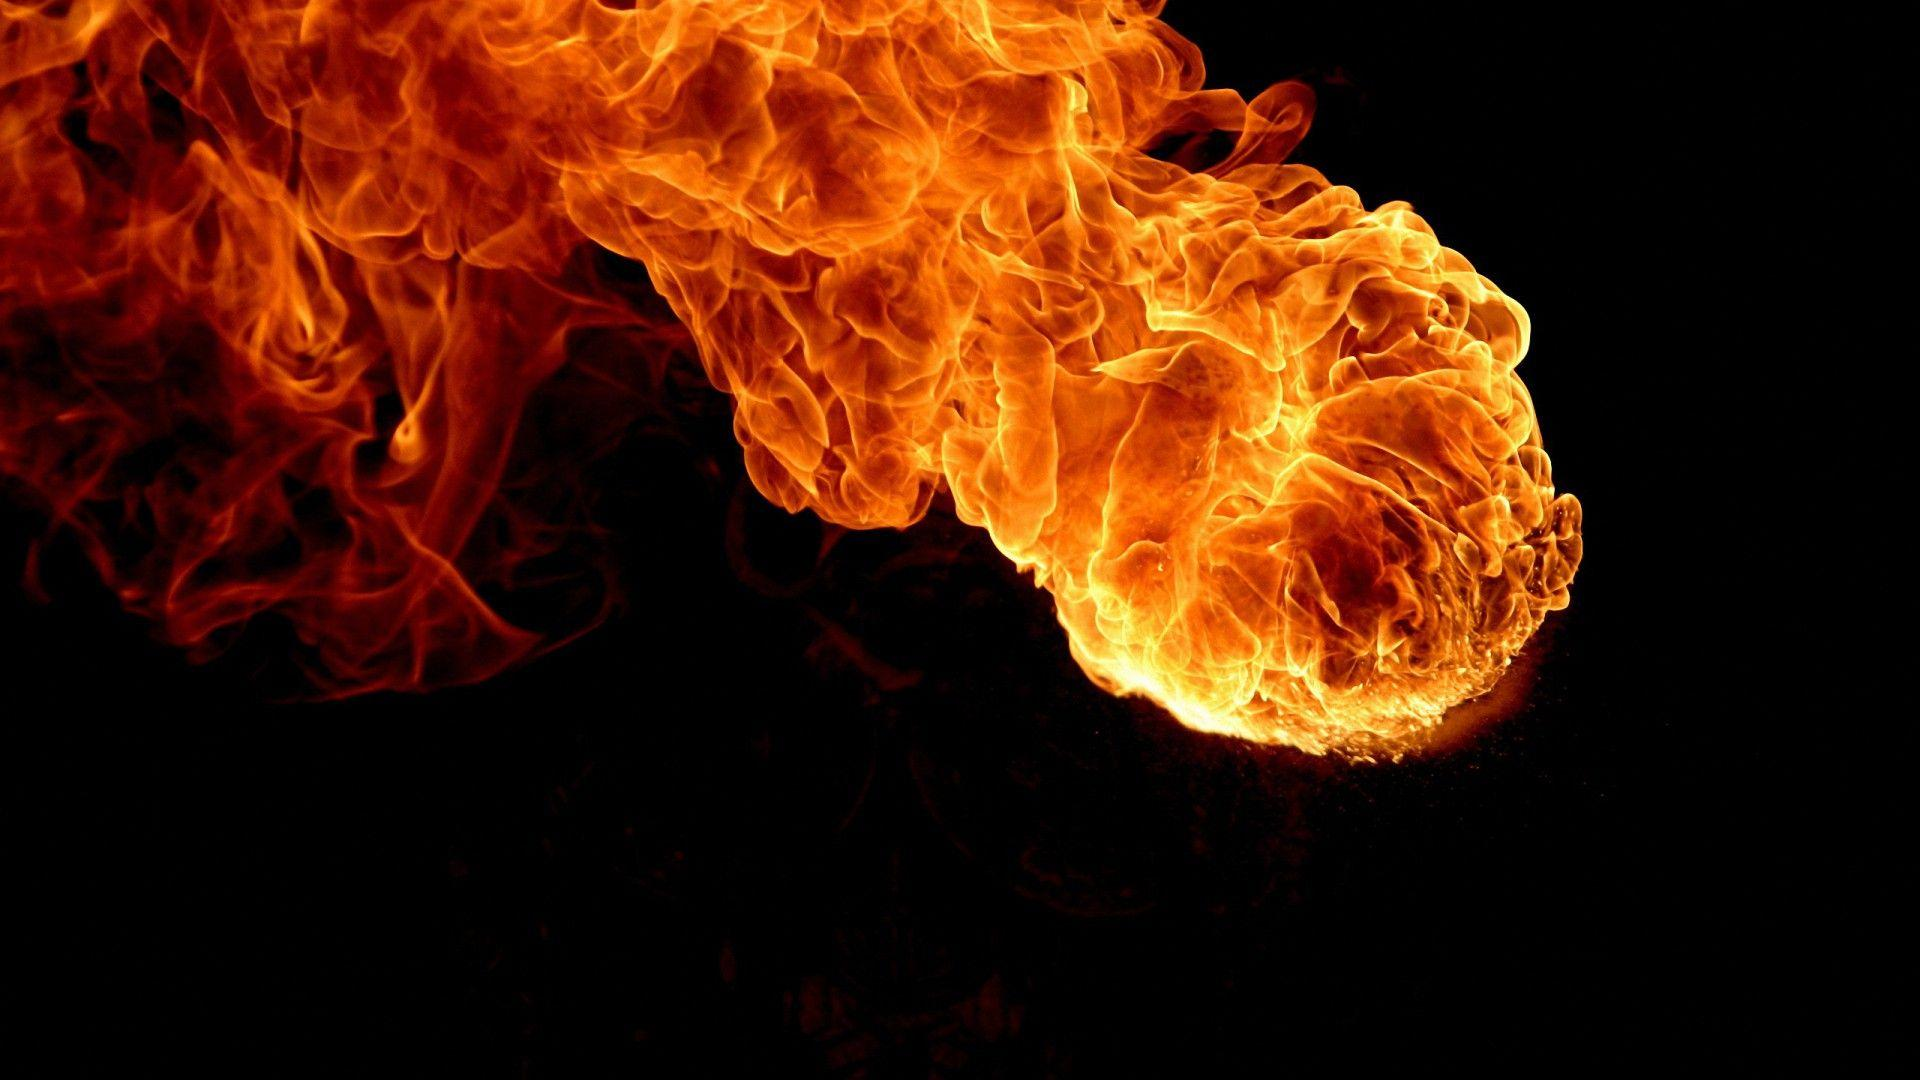 Fire Ball Flame Wallpapers - Full HD Backgrounds